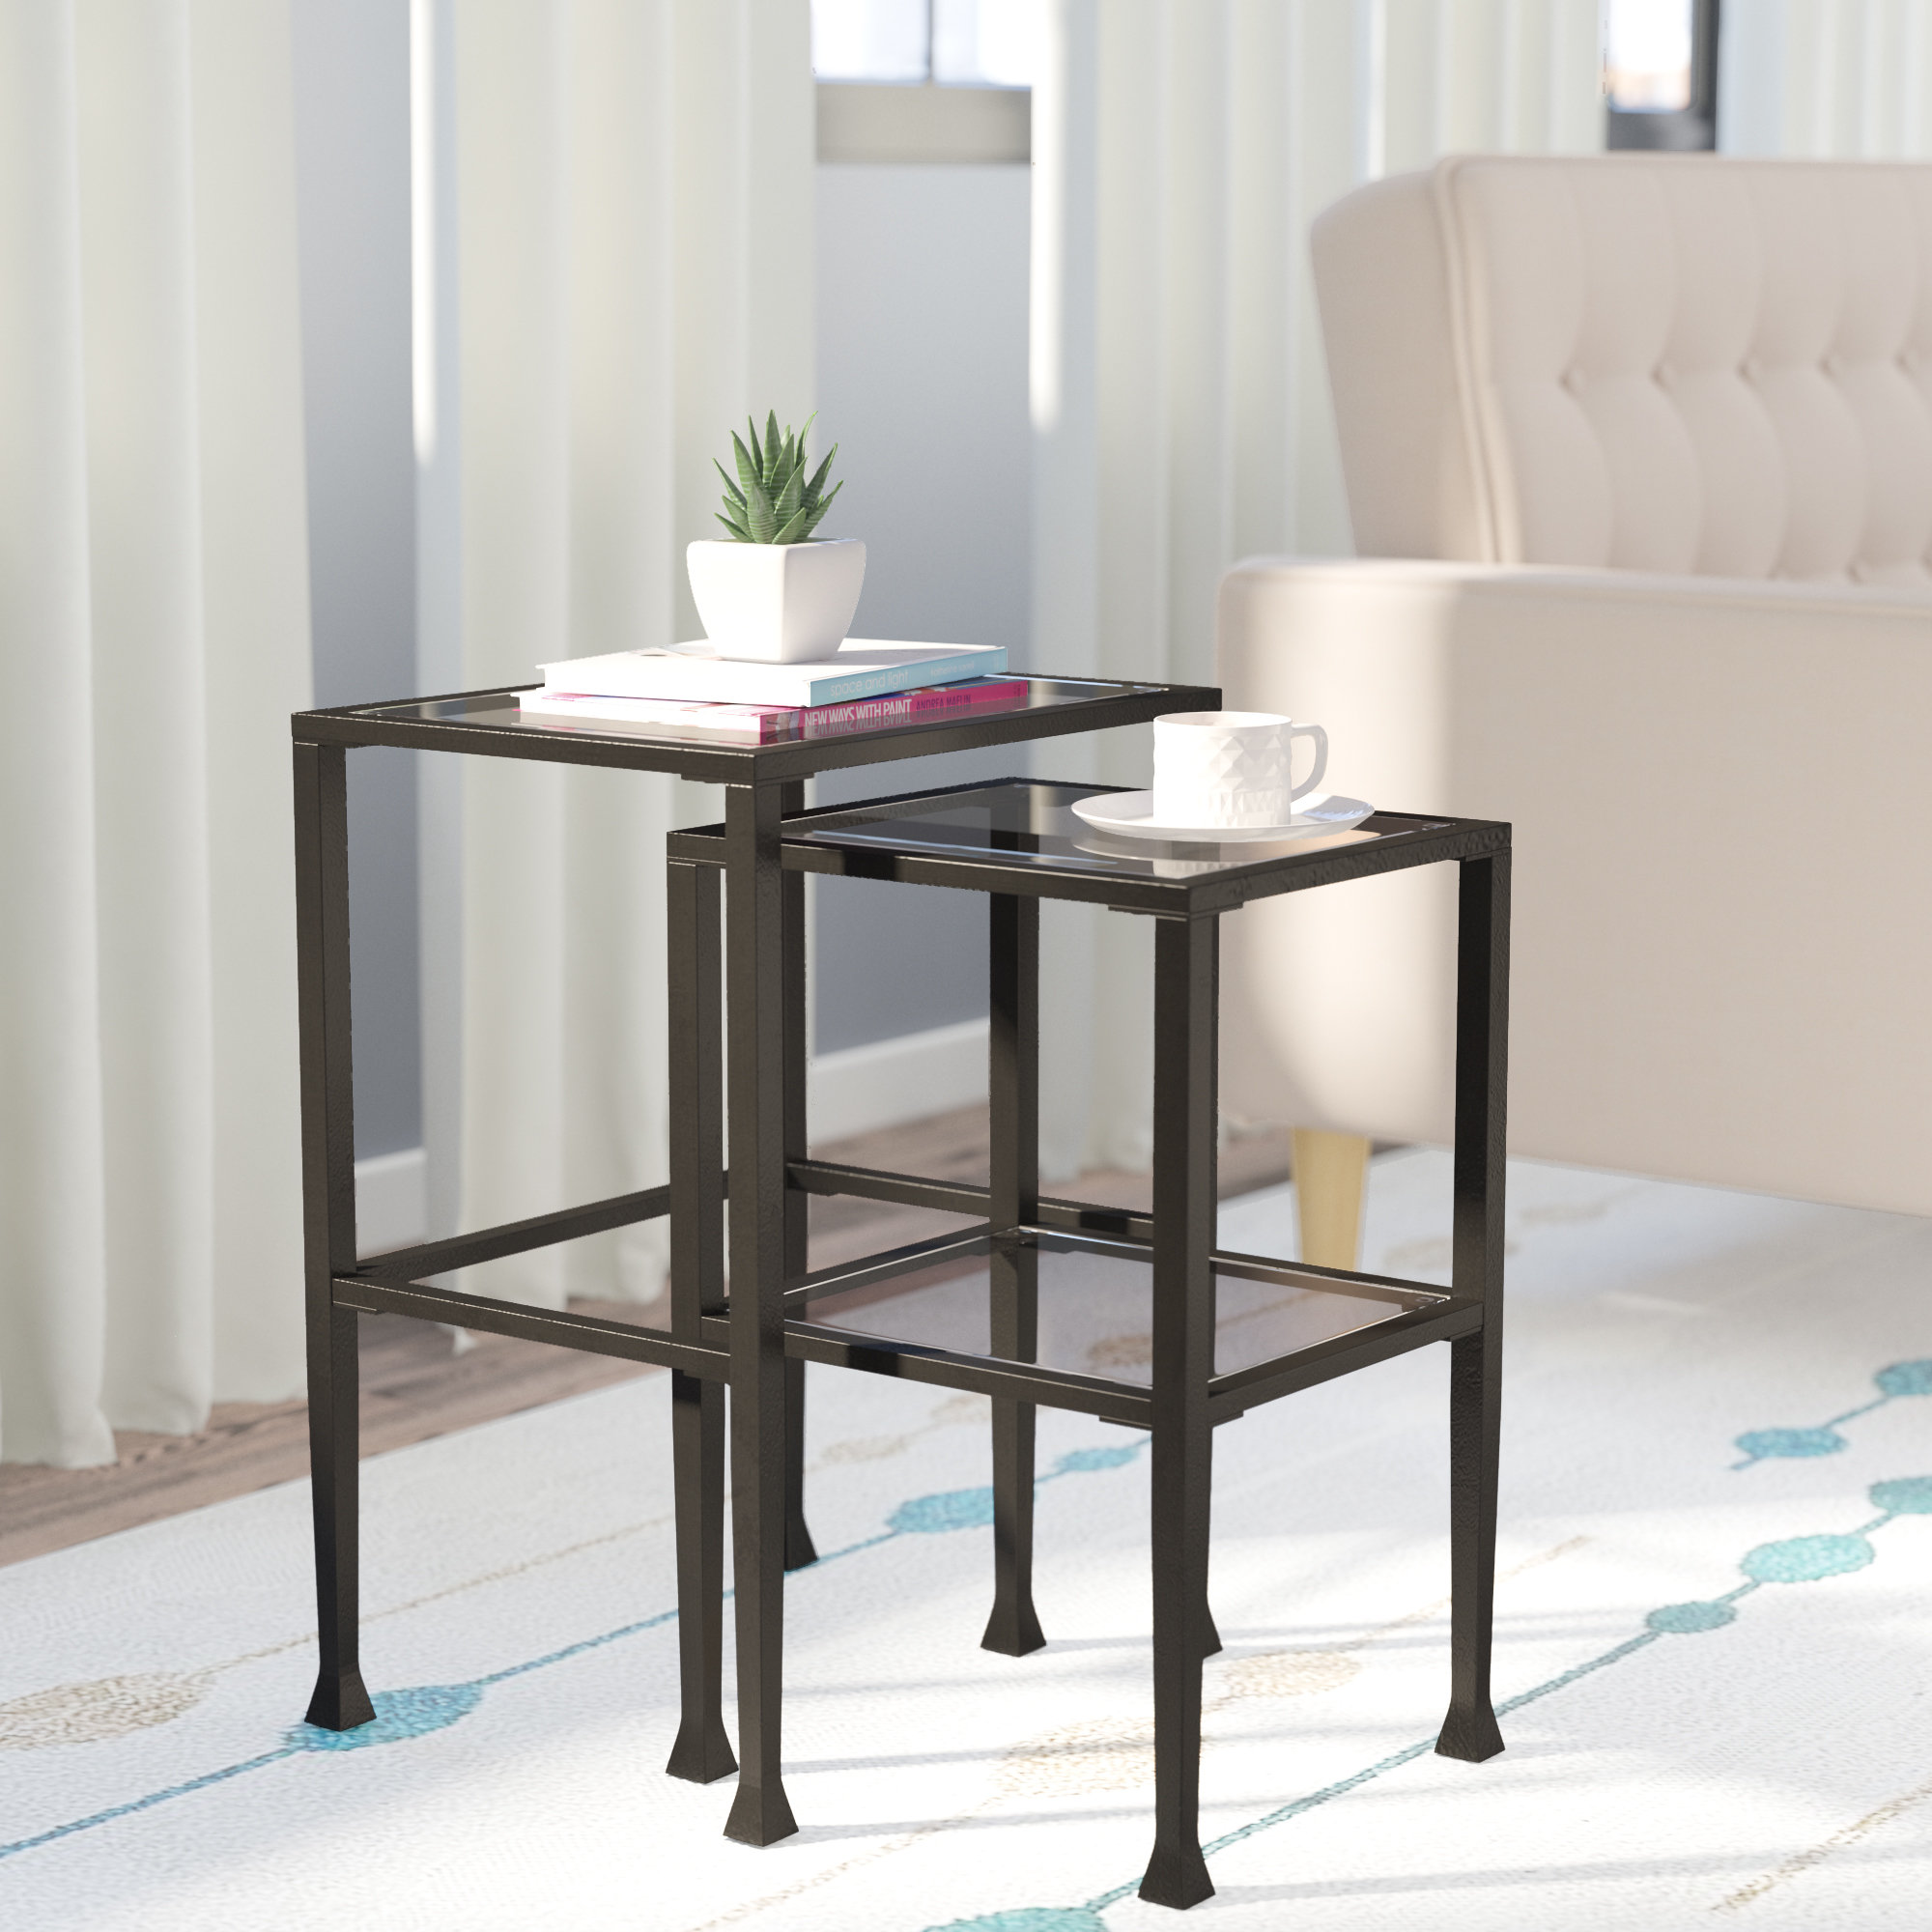 nesting tables you love sabrina piece woven metal accent table wood floor trim living room chest ashley furniture coffee and end mat all modern sofa red cloth with glass door